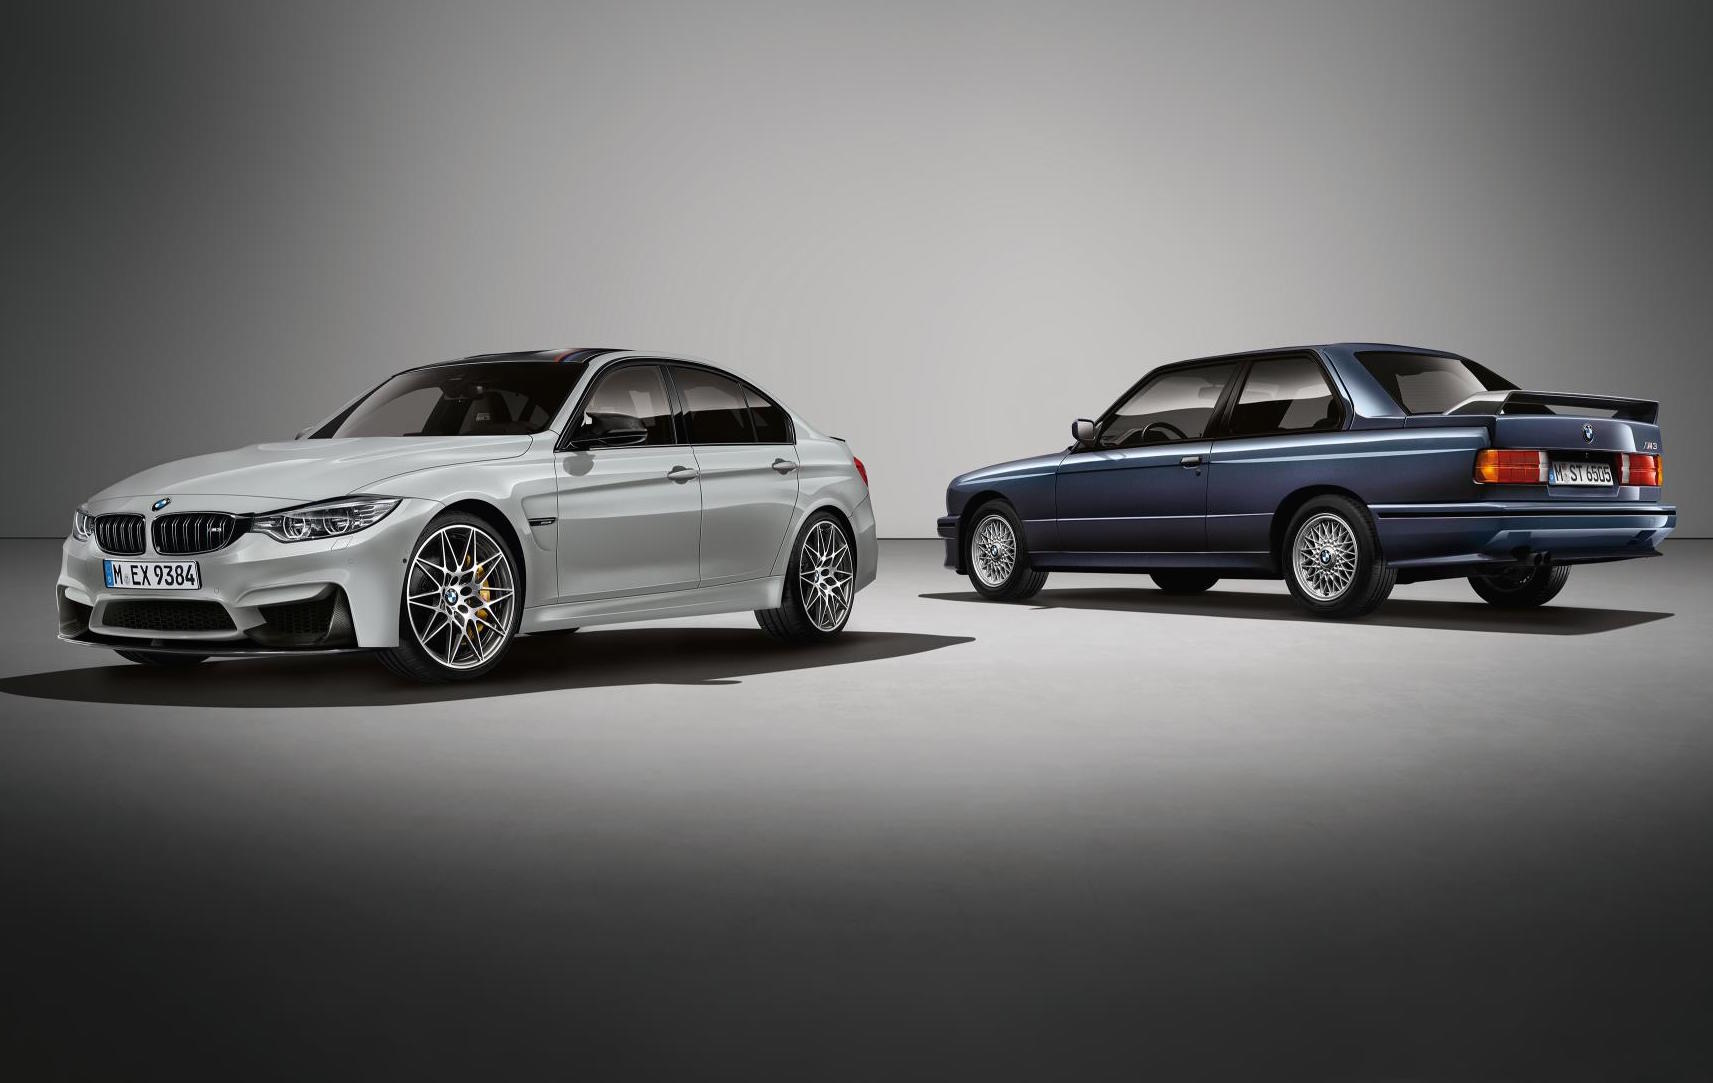 bmw m3 30 jahre edition celebrates m3 30th birthday performancedrive. Black Bedroom Furniture Sets. Home Design Ideas